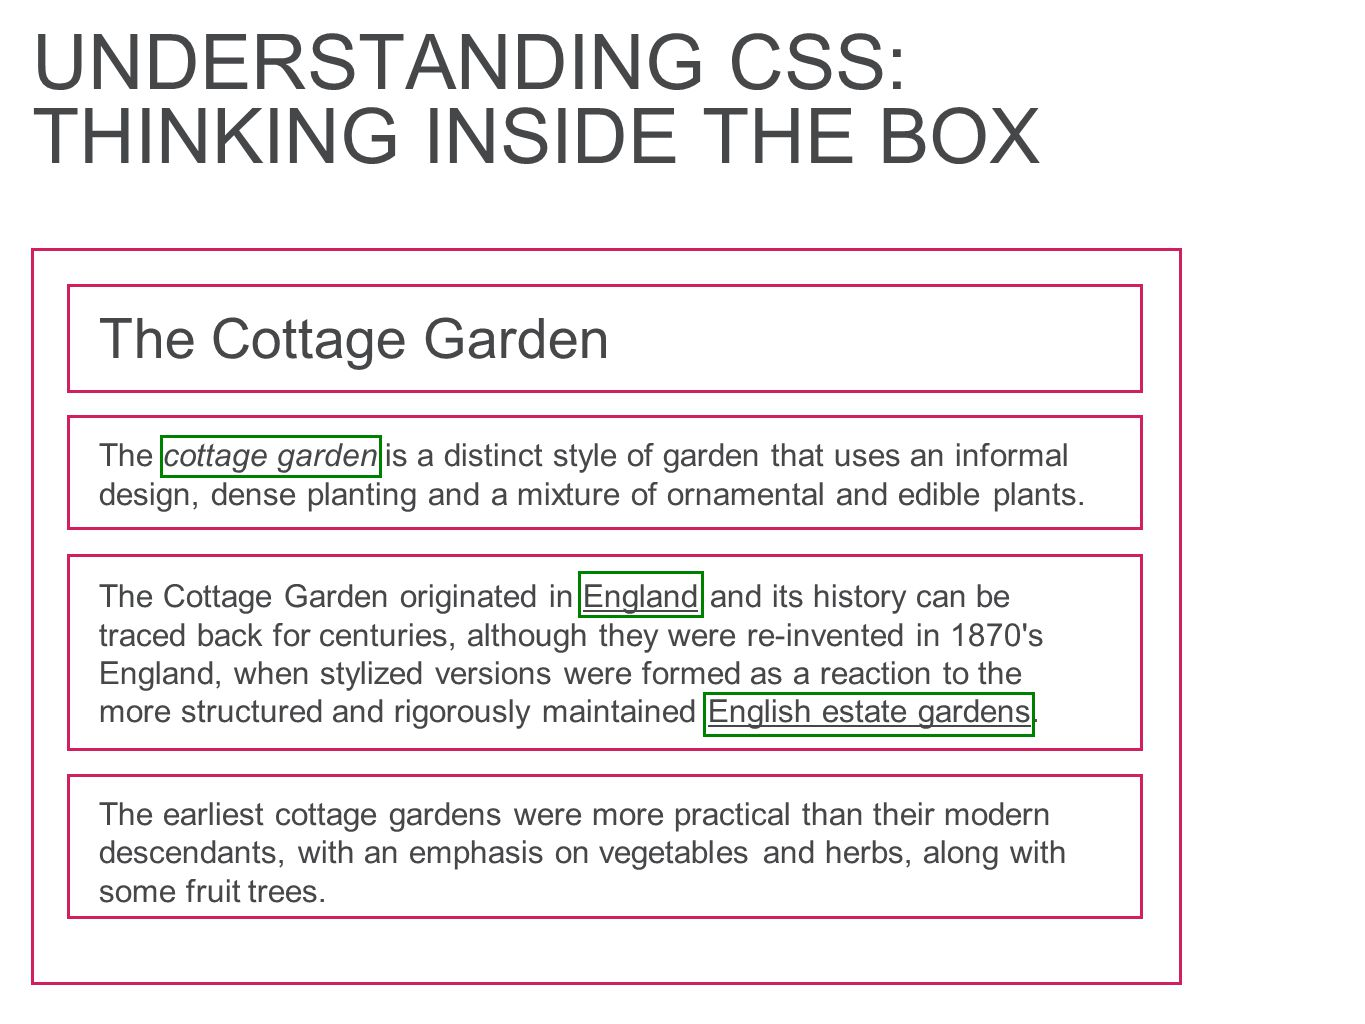 UNDERSTANDING CSS: THINKING INSIDE THE BOX The Cottage Garden The cottage garden is a distinct style of garden that uses an informal design, dense planting and a mixture of ornamental and edible plants.